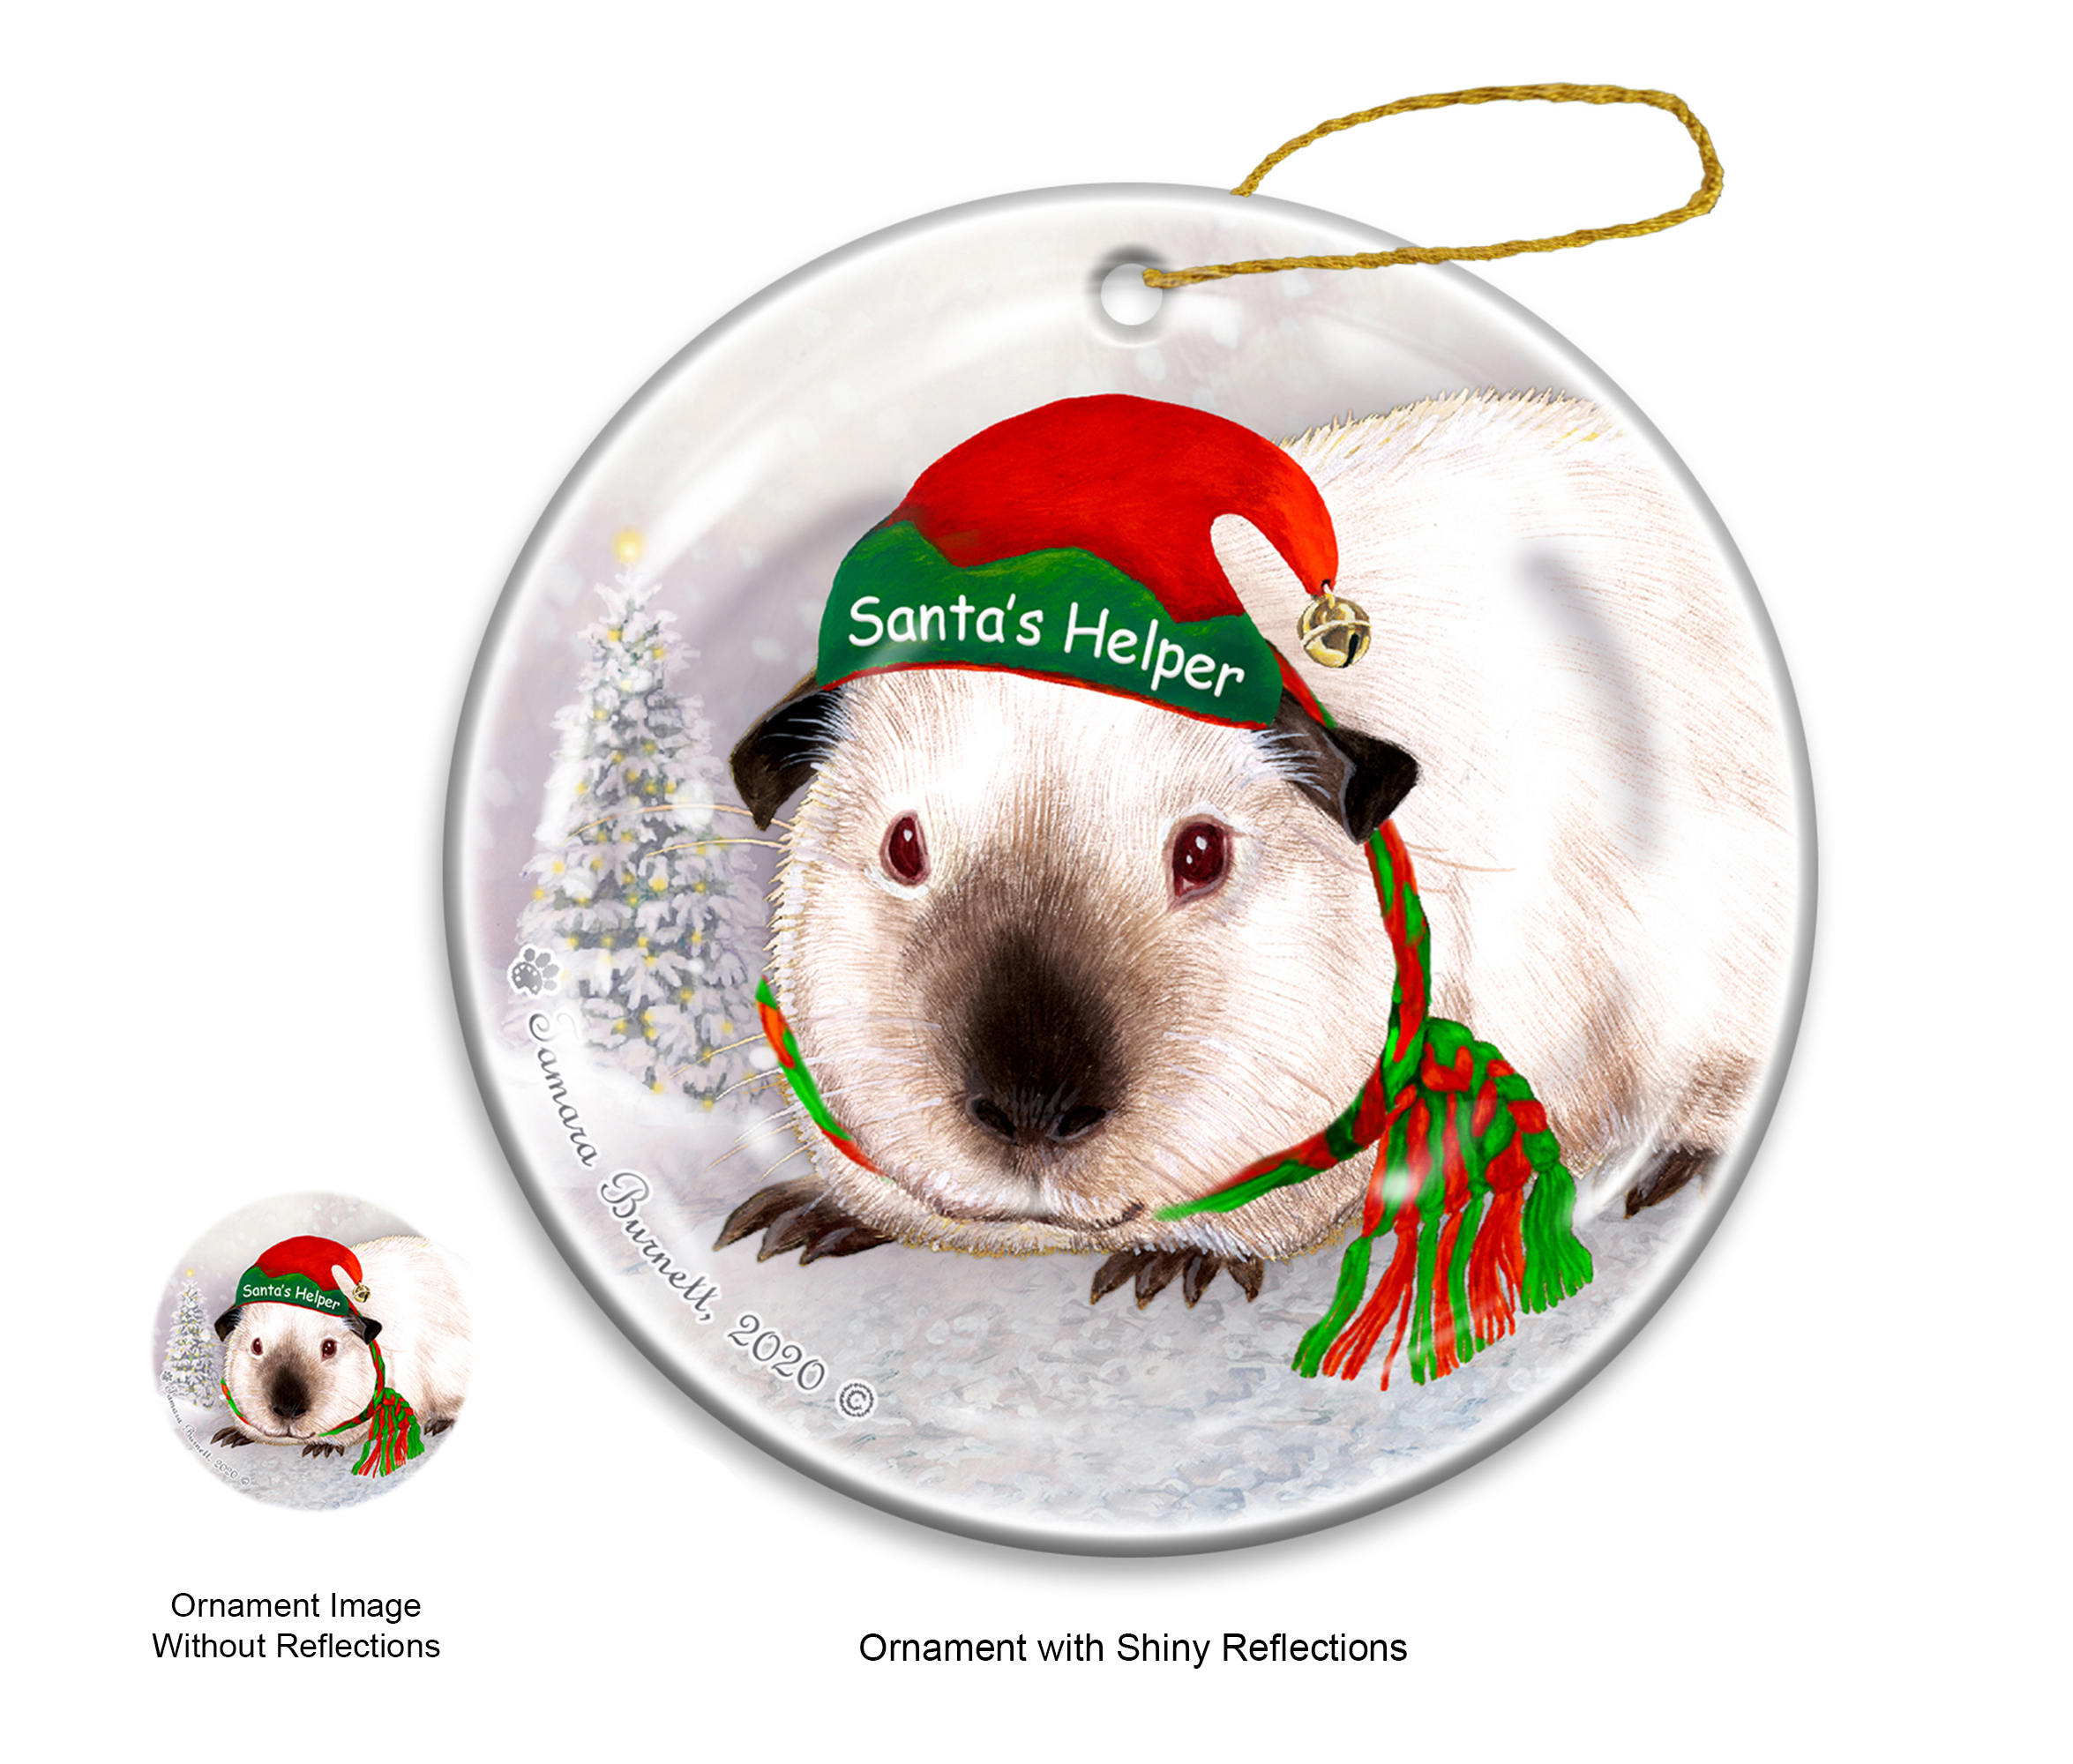 An image of the Guinea Pig Himalayan - Santa's Helper Ornament